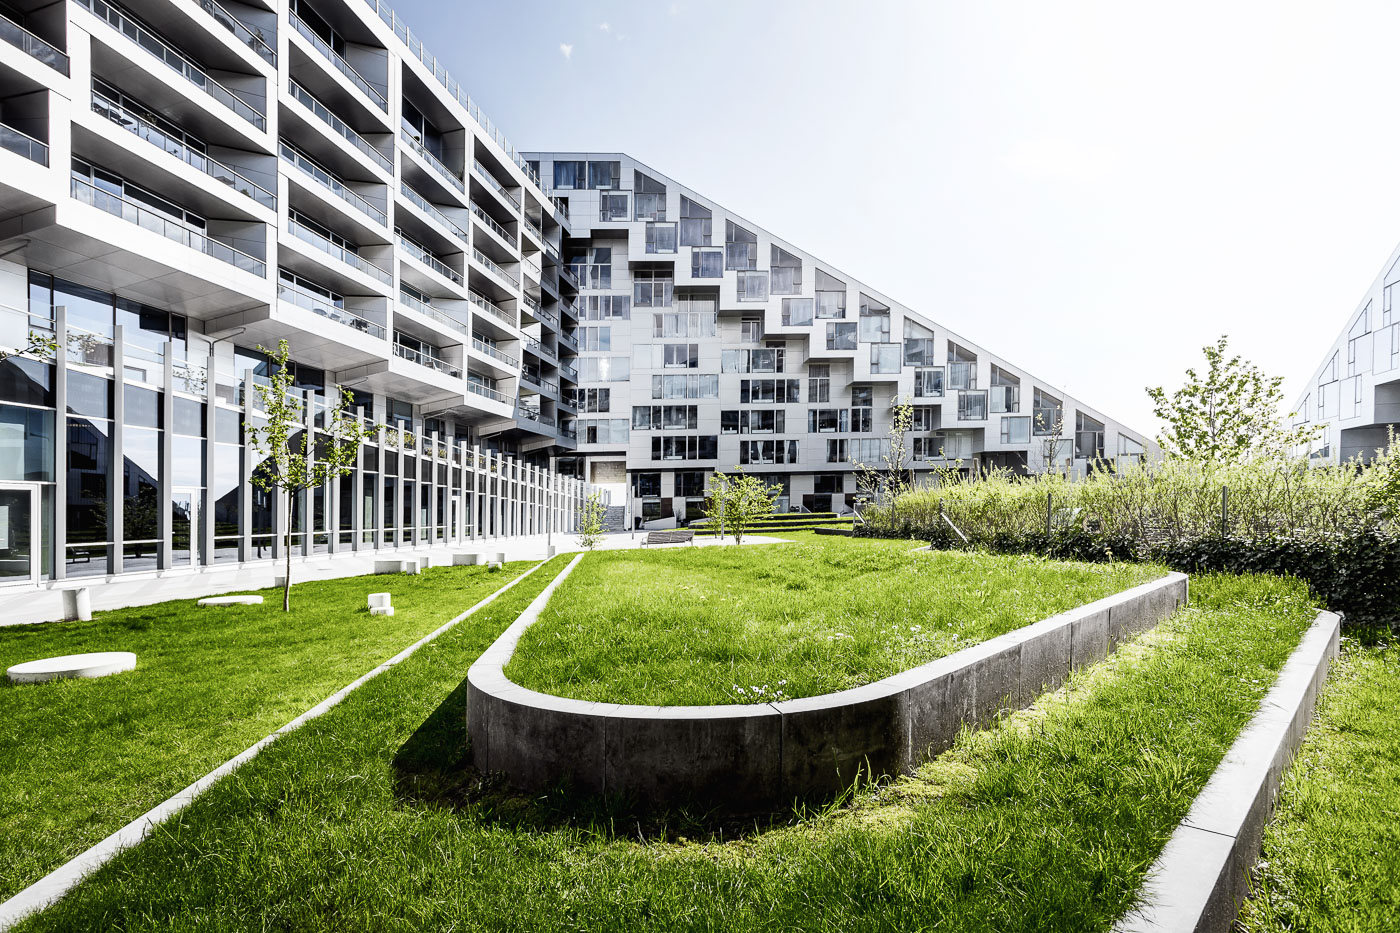 8 House Copenhagen by Bjarke Ingels Group